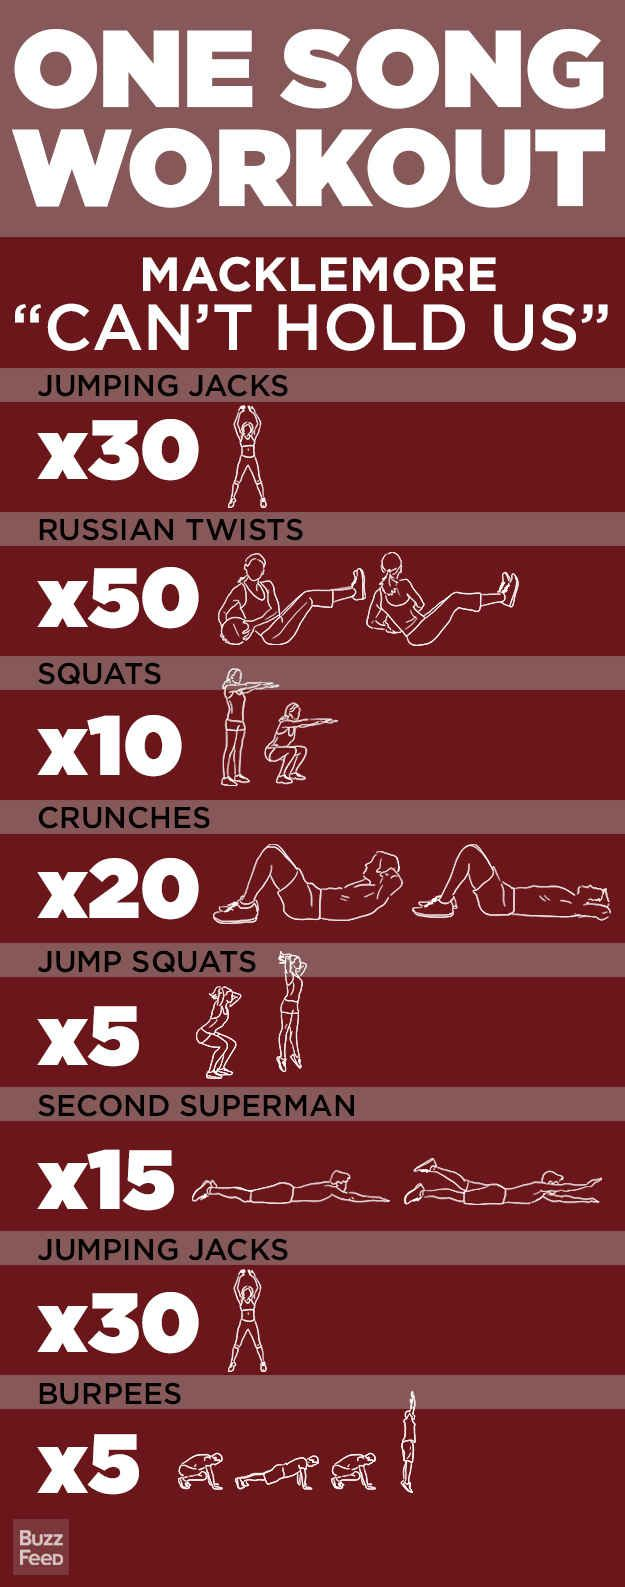 Five -One Song workouts